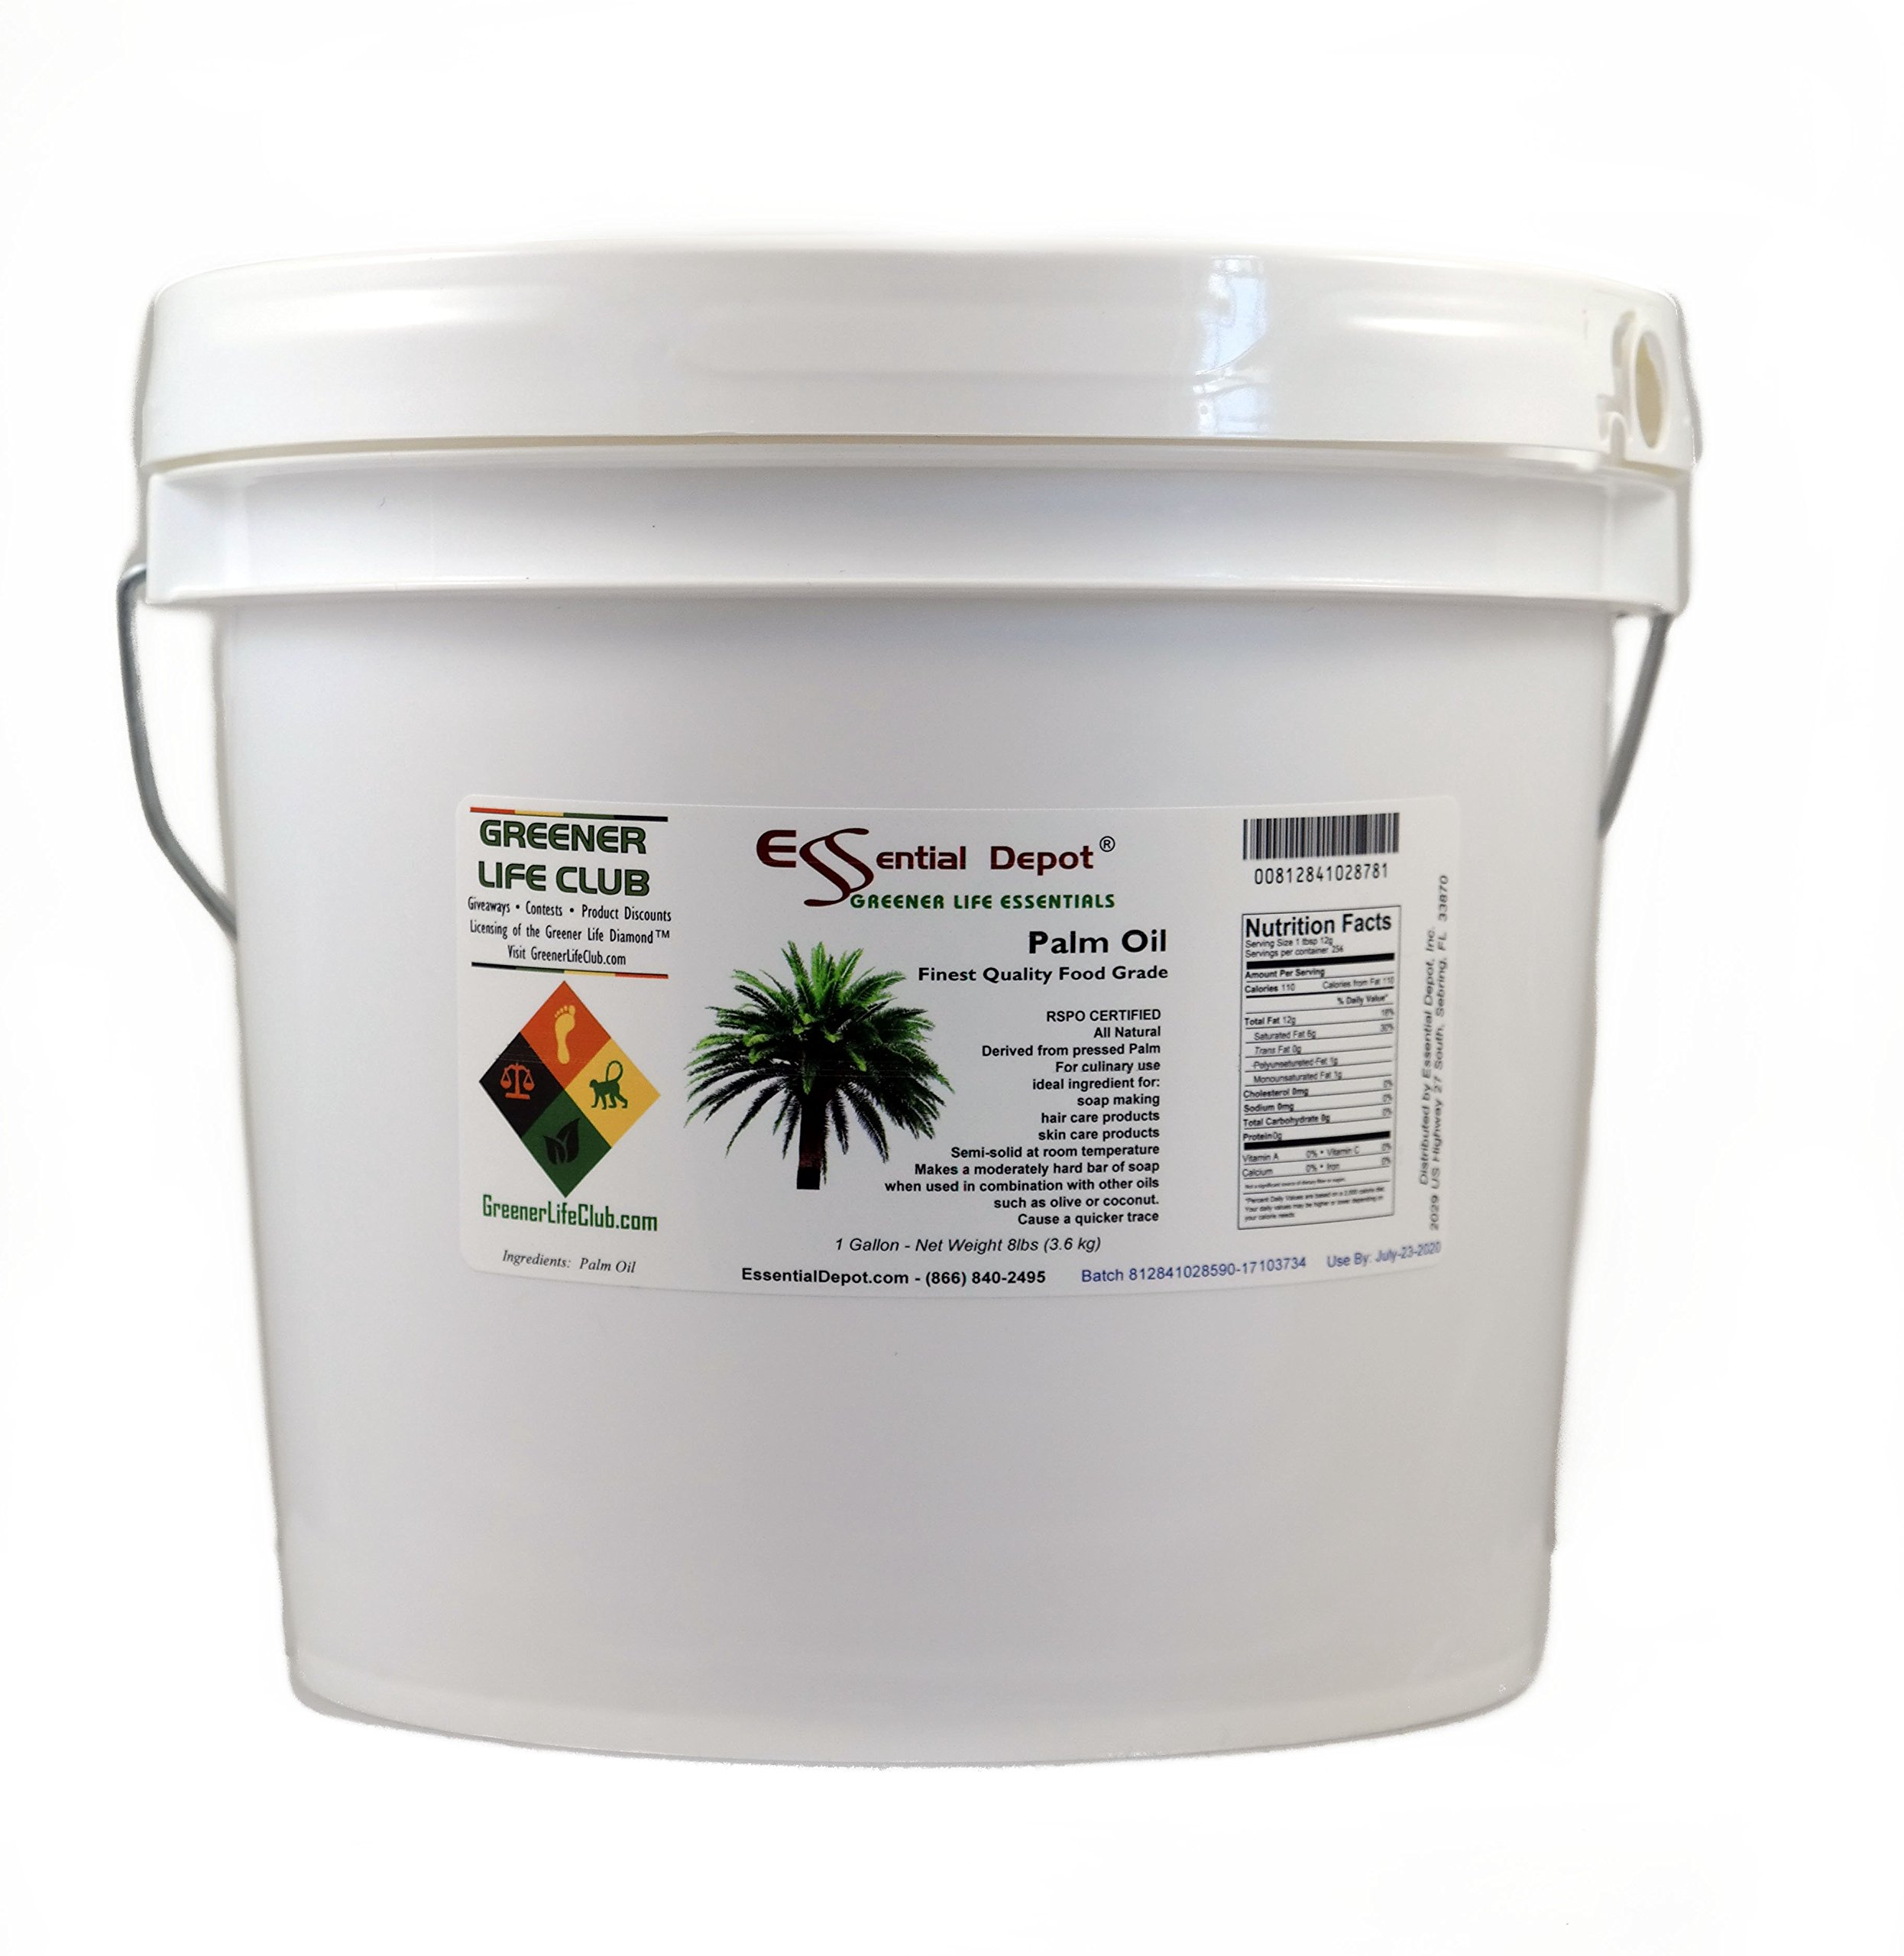 Palm Oil - RSPO Certified - Sustainable - Food Grade - Kosher - Not Hydrogenated - 8 lbs in a 1 Gallon Pail - HDPE microwavable Container with resealable lid and Removable Handle by Essential Depot